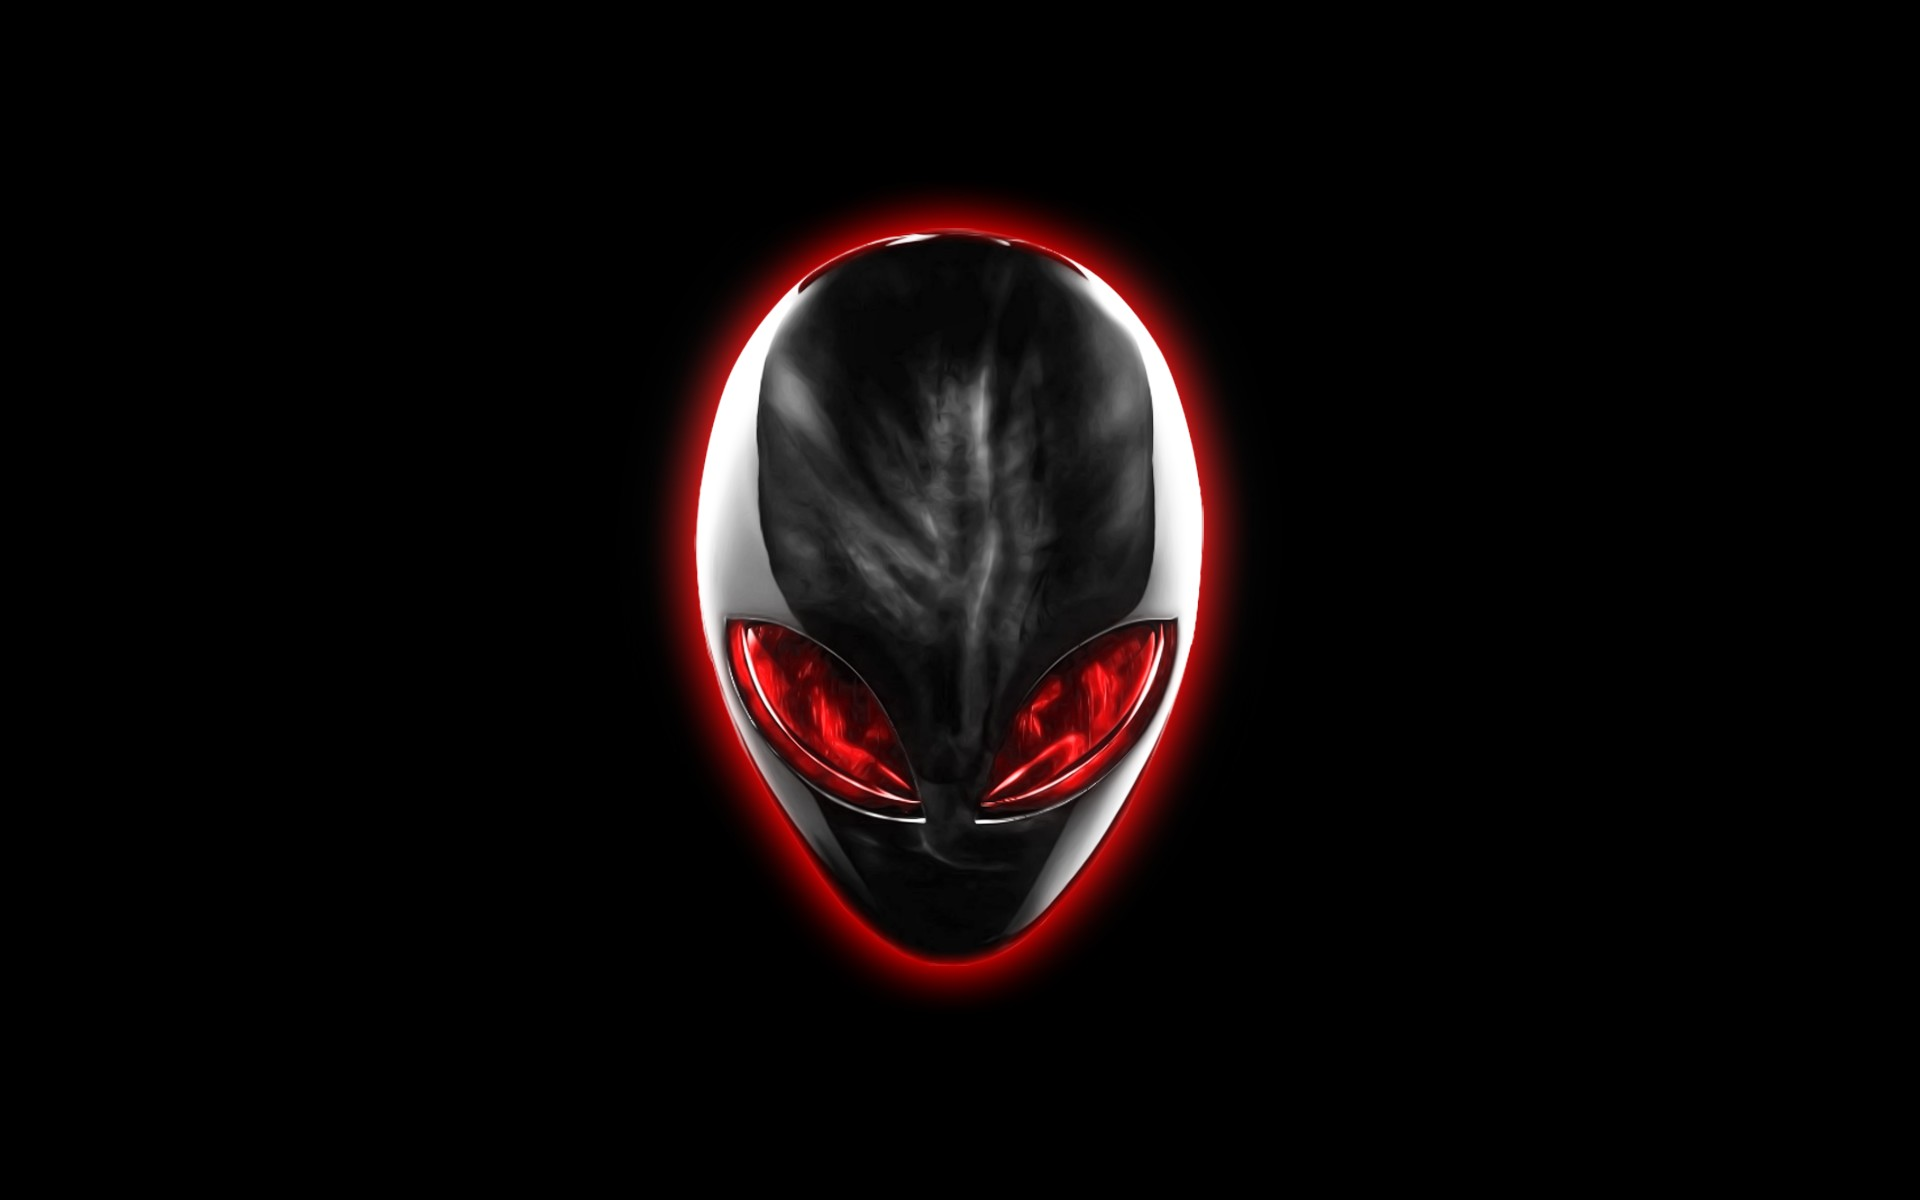 Chrome Alienware Red Eyes by darkangelkrys 1920x1200